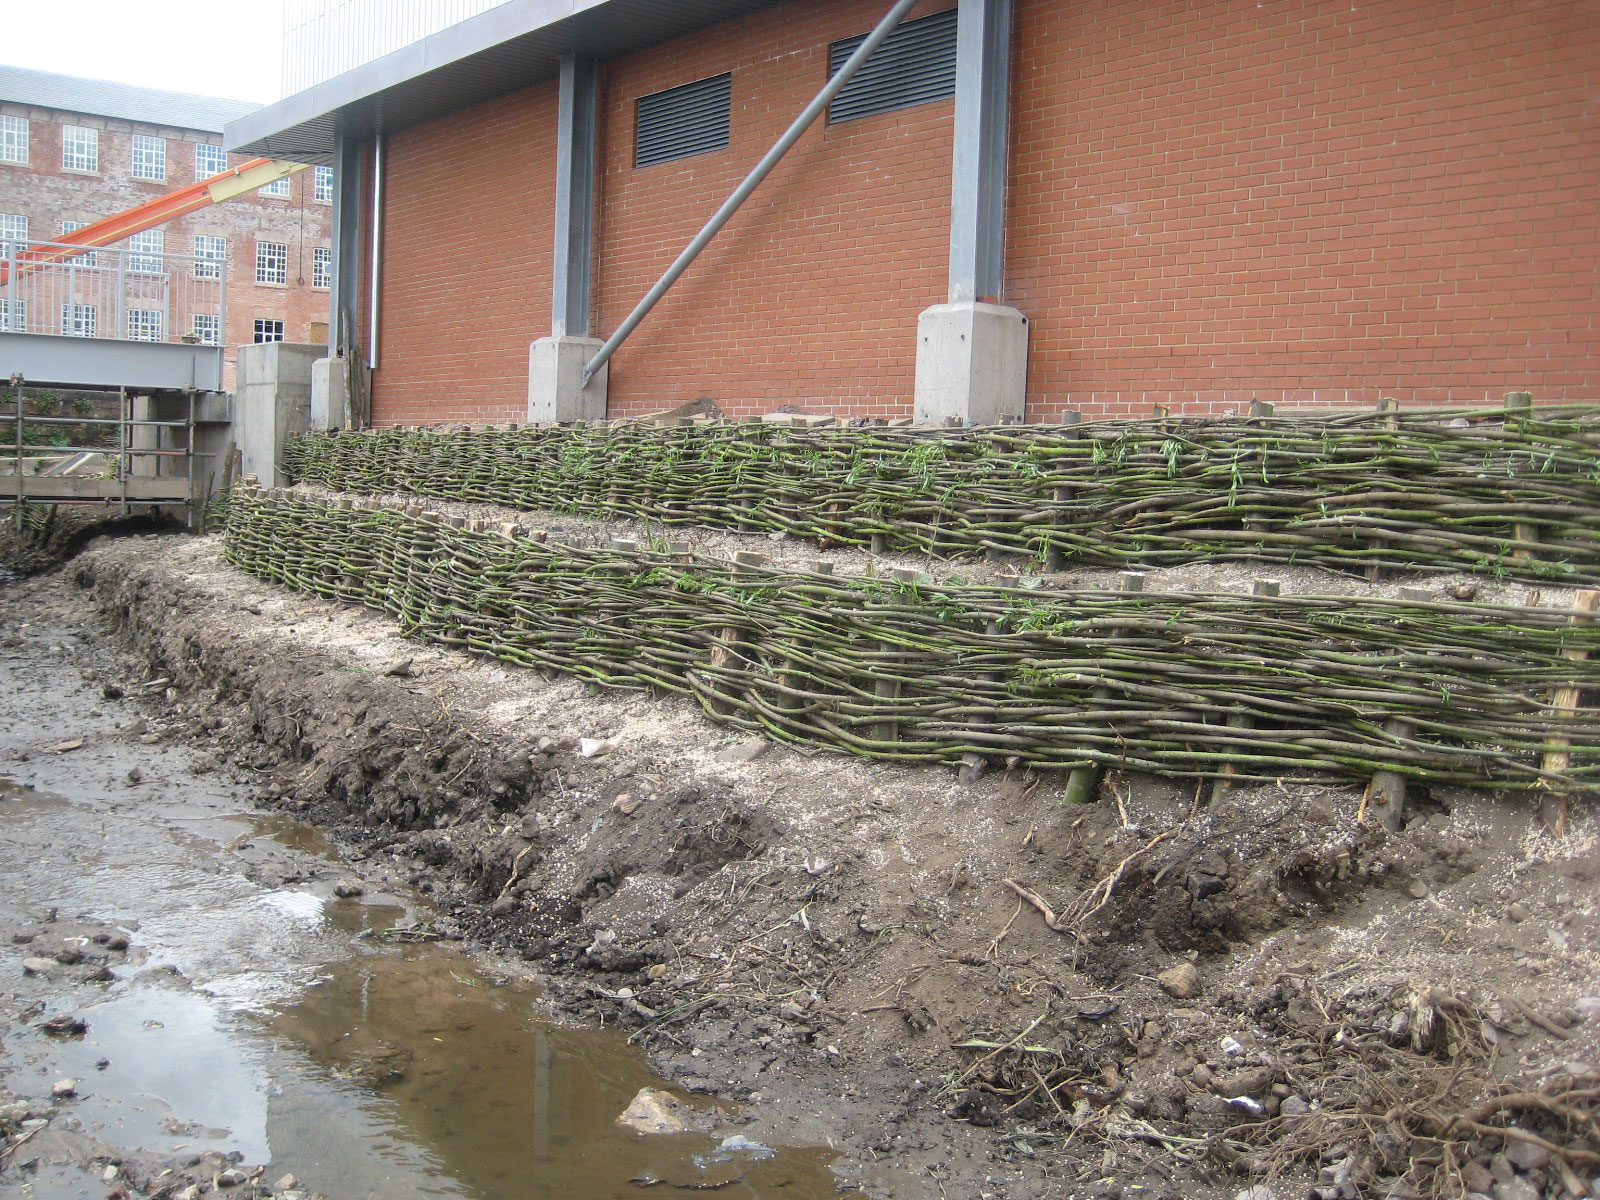 <span>Ref: D9</span><br>The willow posts and rods will root into the bank helping to stabilise the soil.